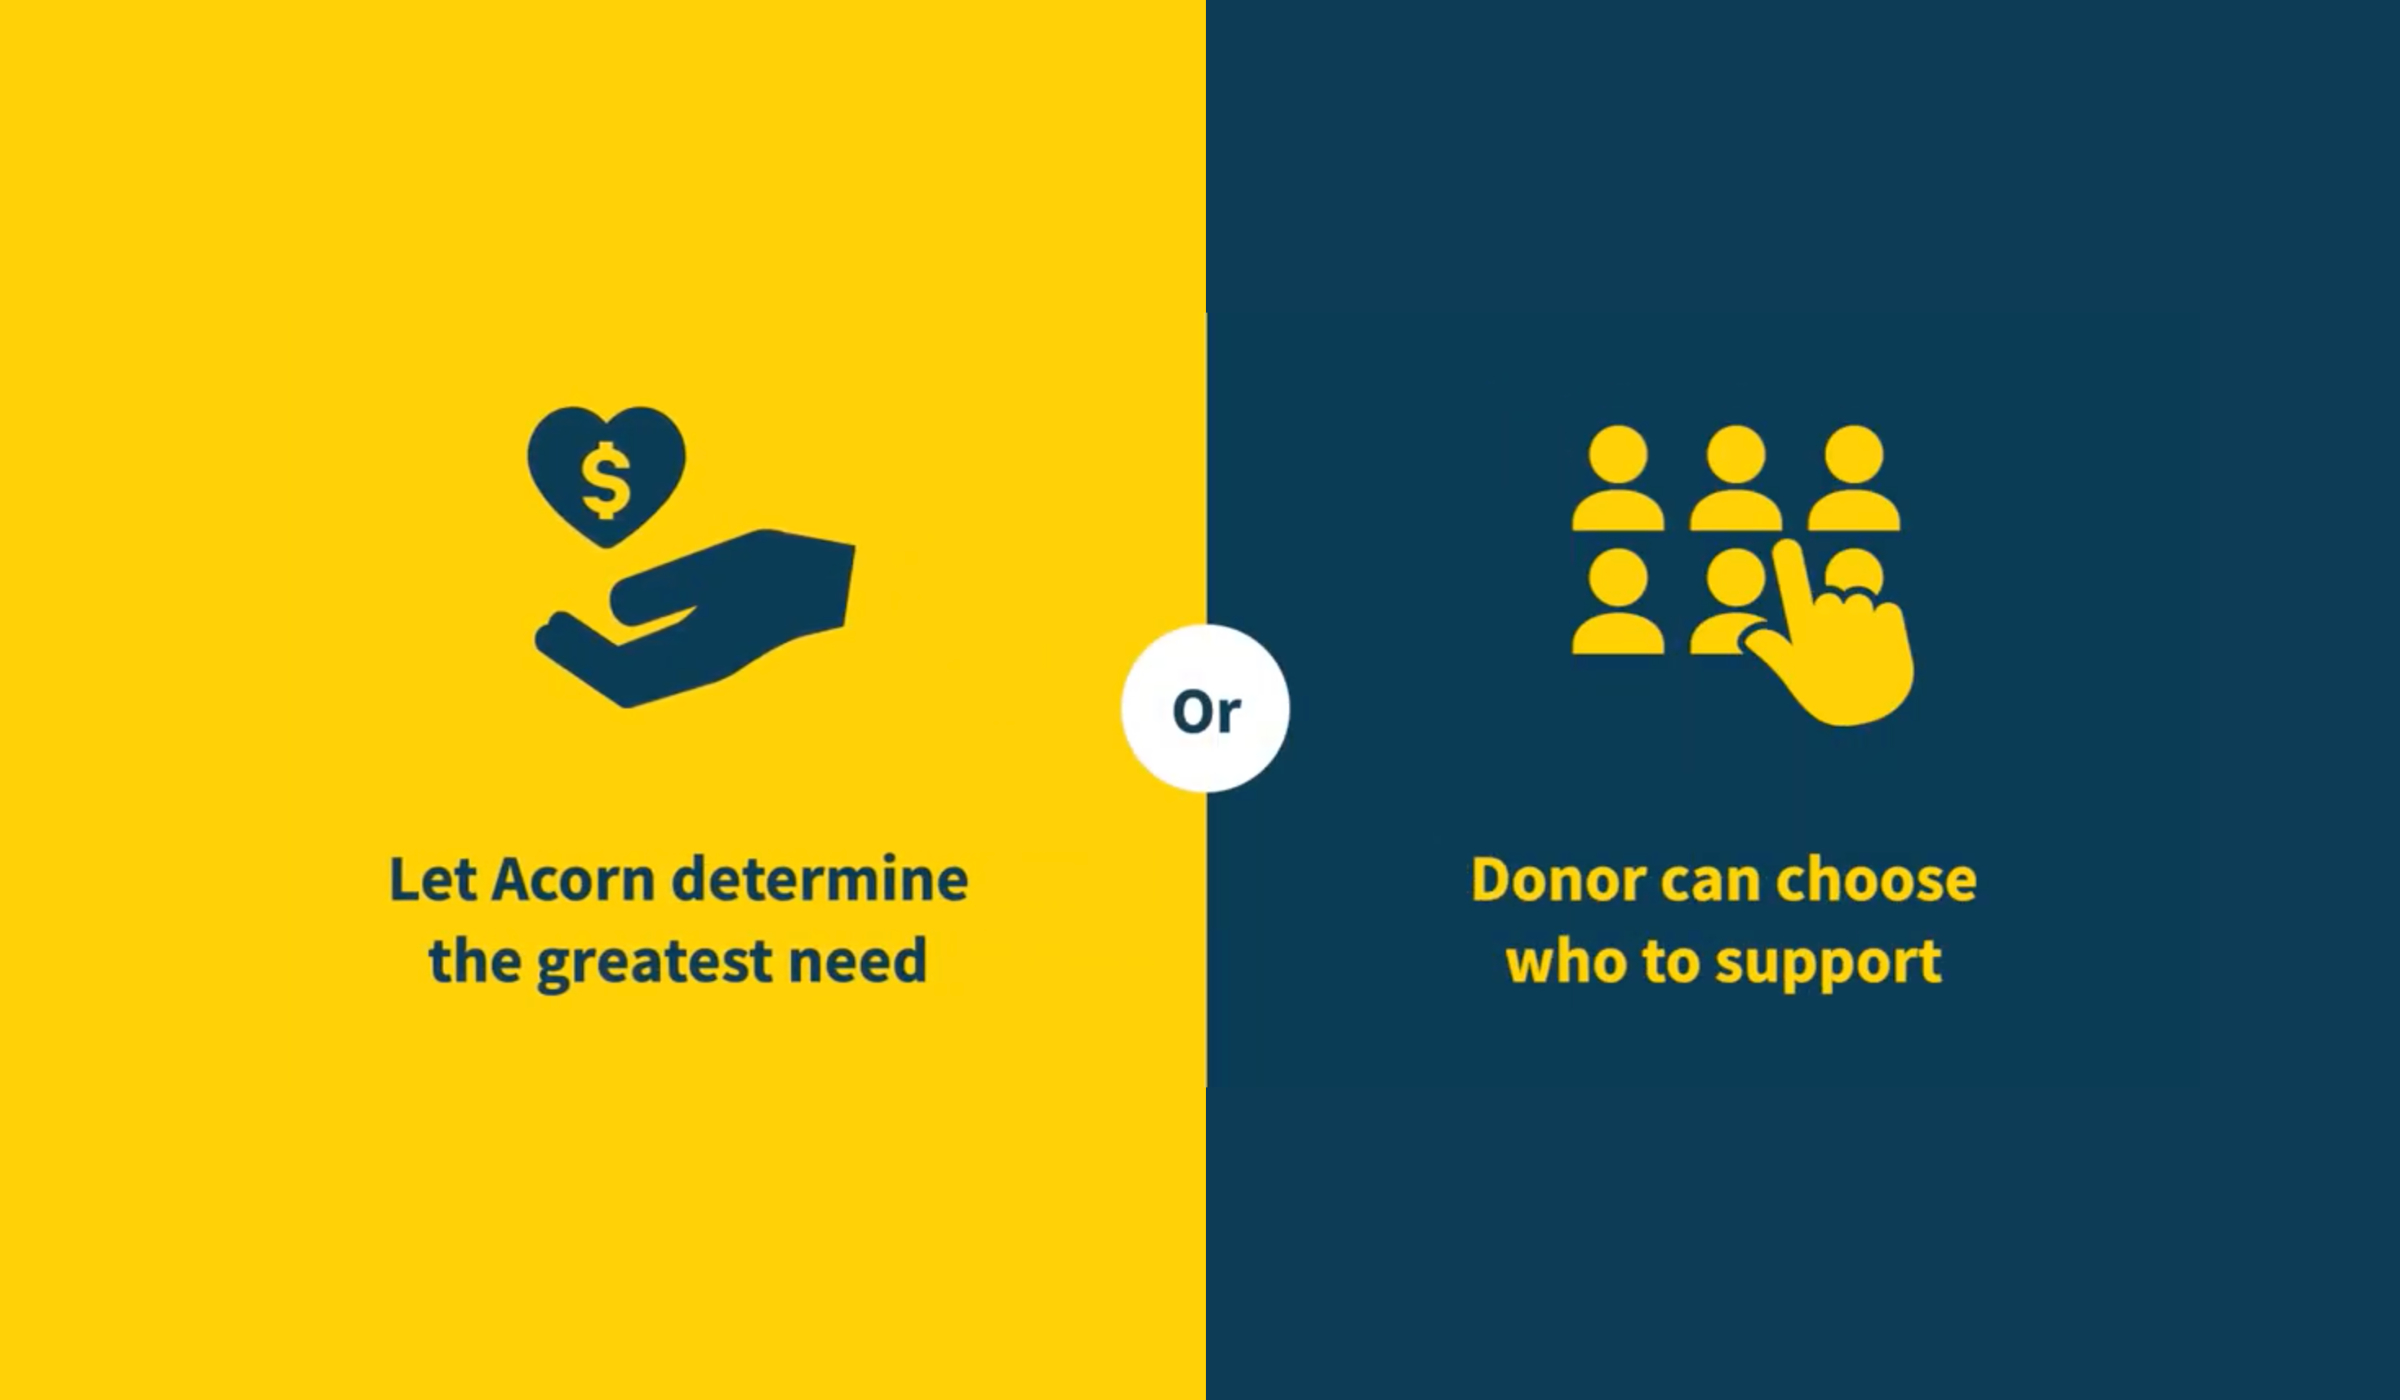 A split screen slide from our animation working showing how Acorn gives options when donating to them